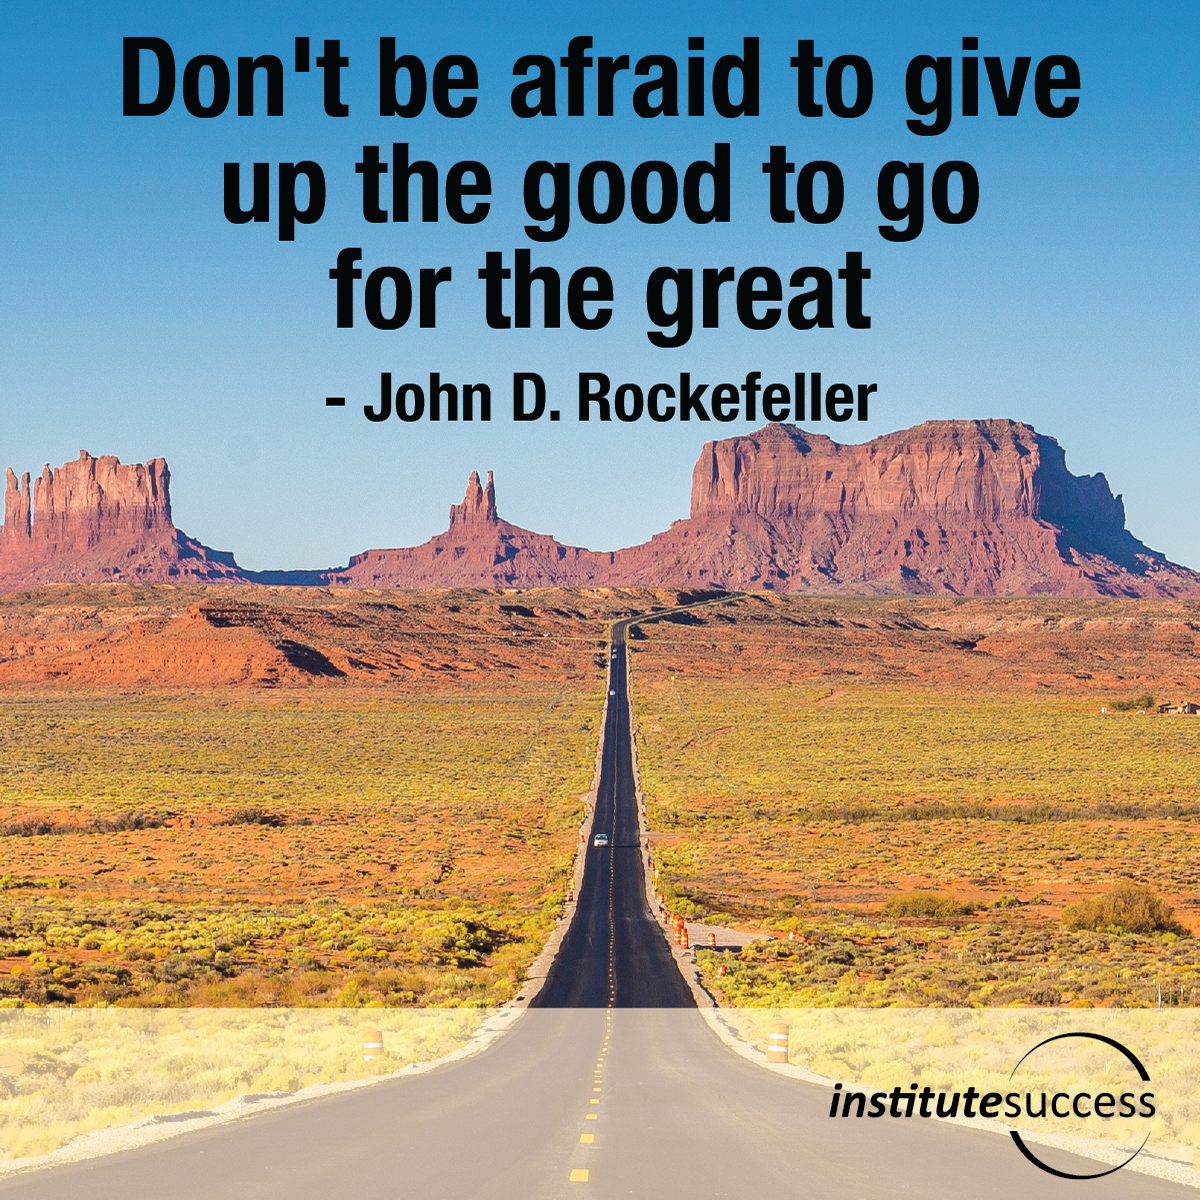 Don't be afraid to give up the good to go for the great- John D. Rockefeller